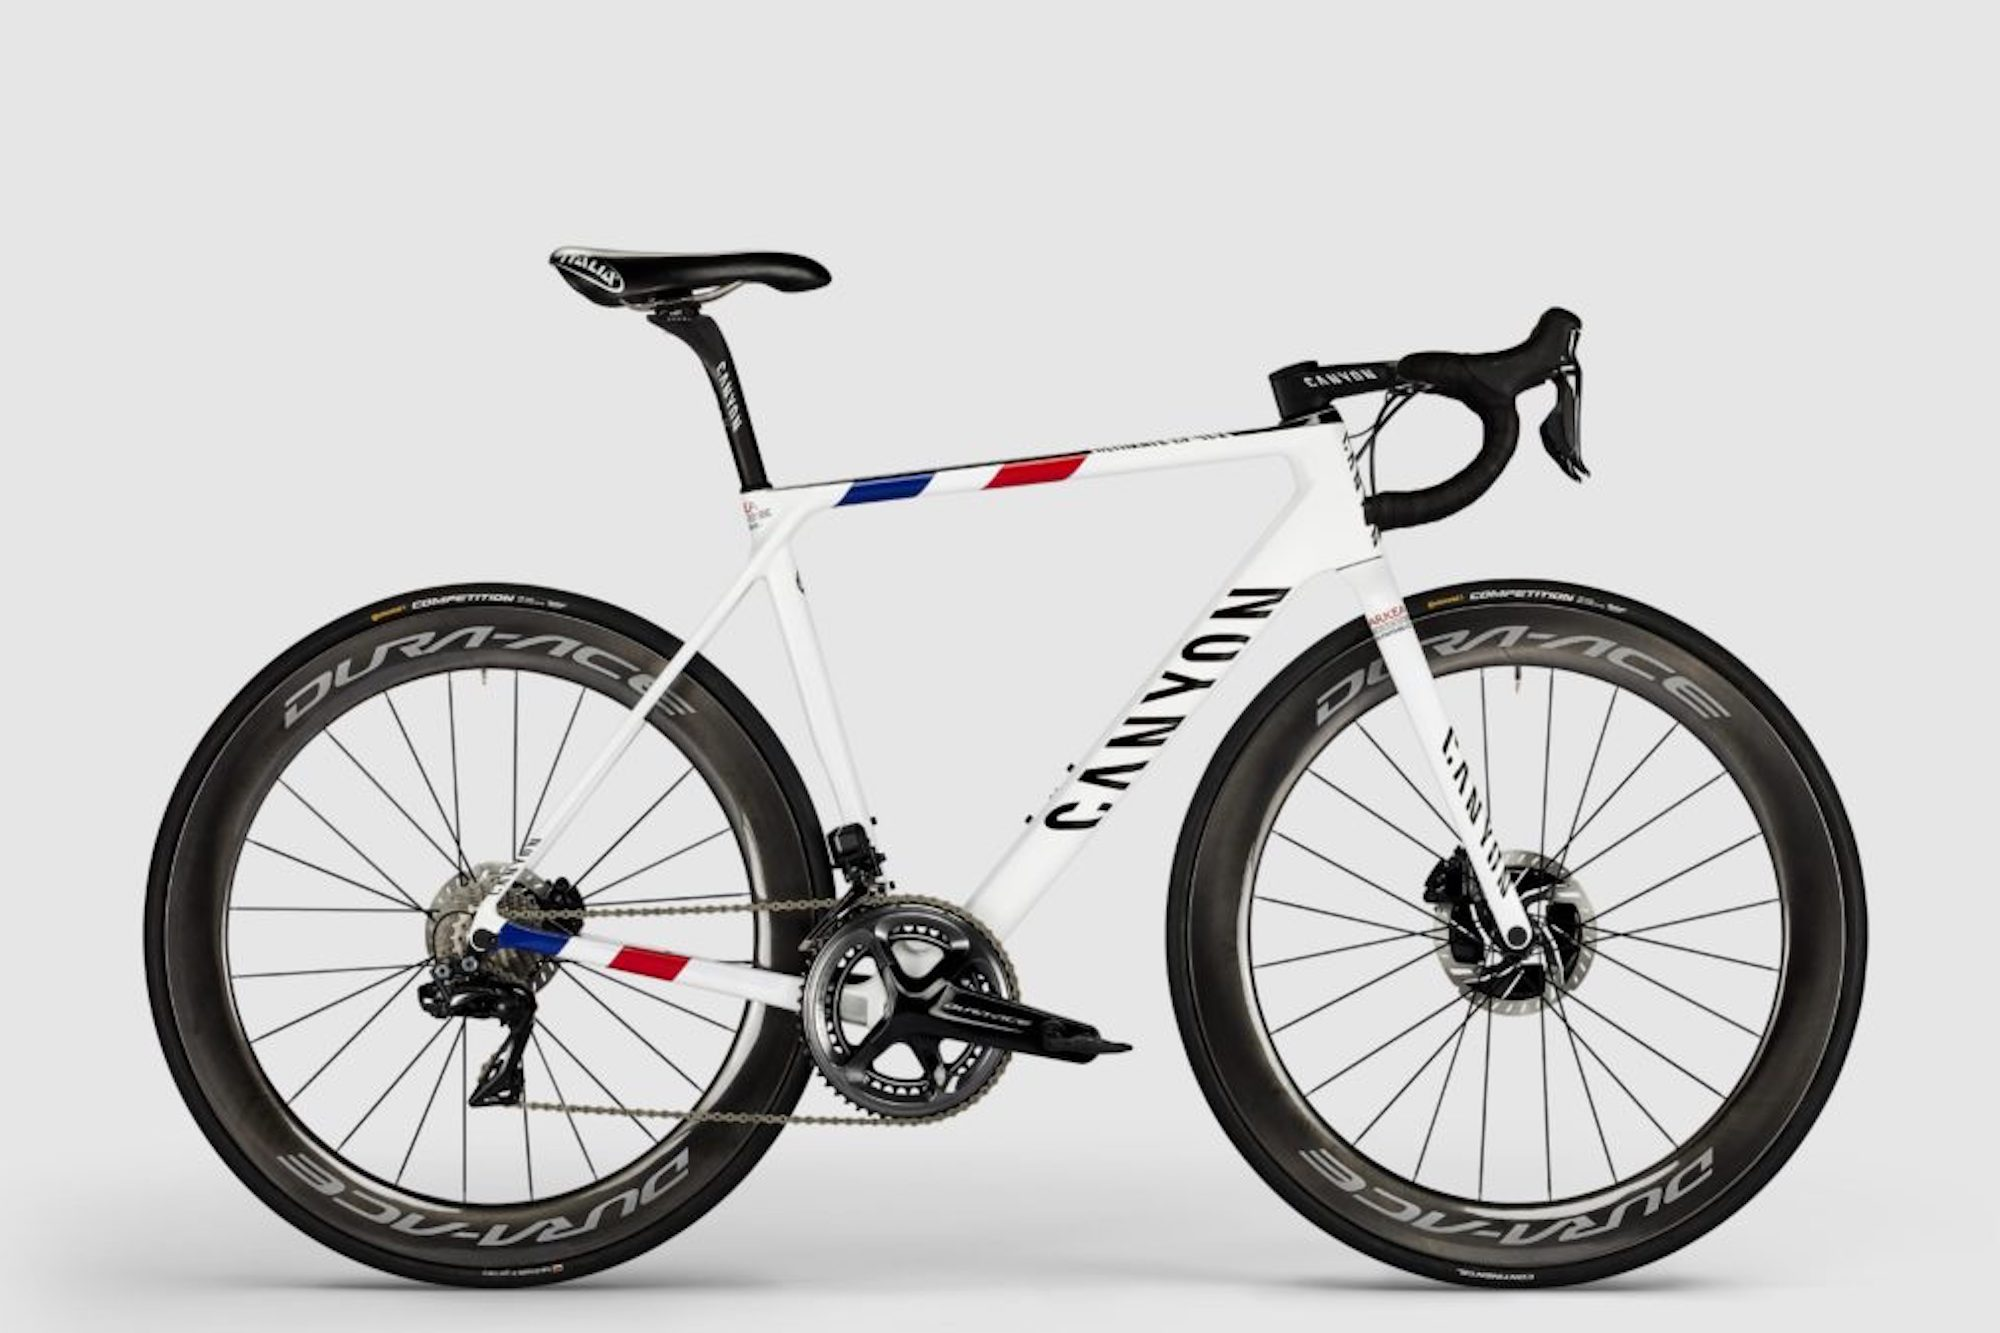 Arkéa-Samsic to race on Canyon bikes in 2020